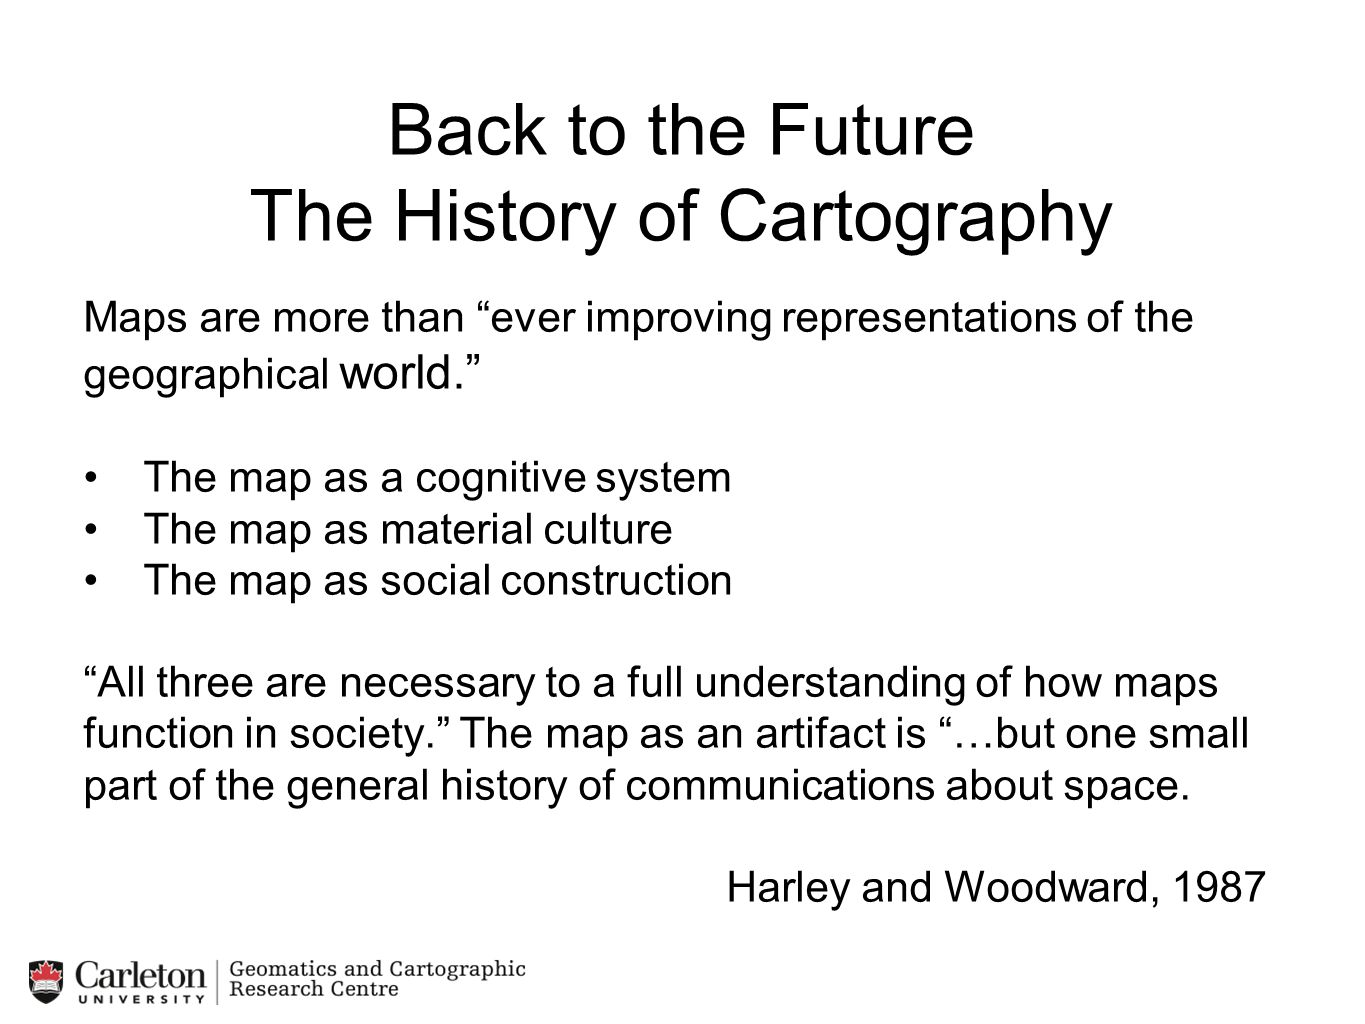 Back to the Future The History of Cartography